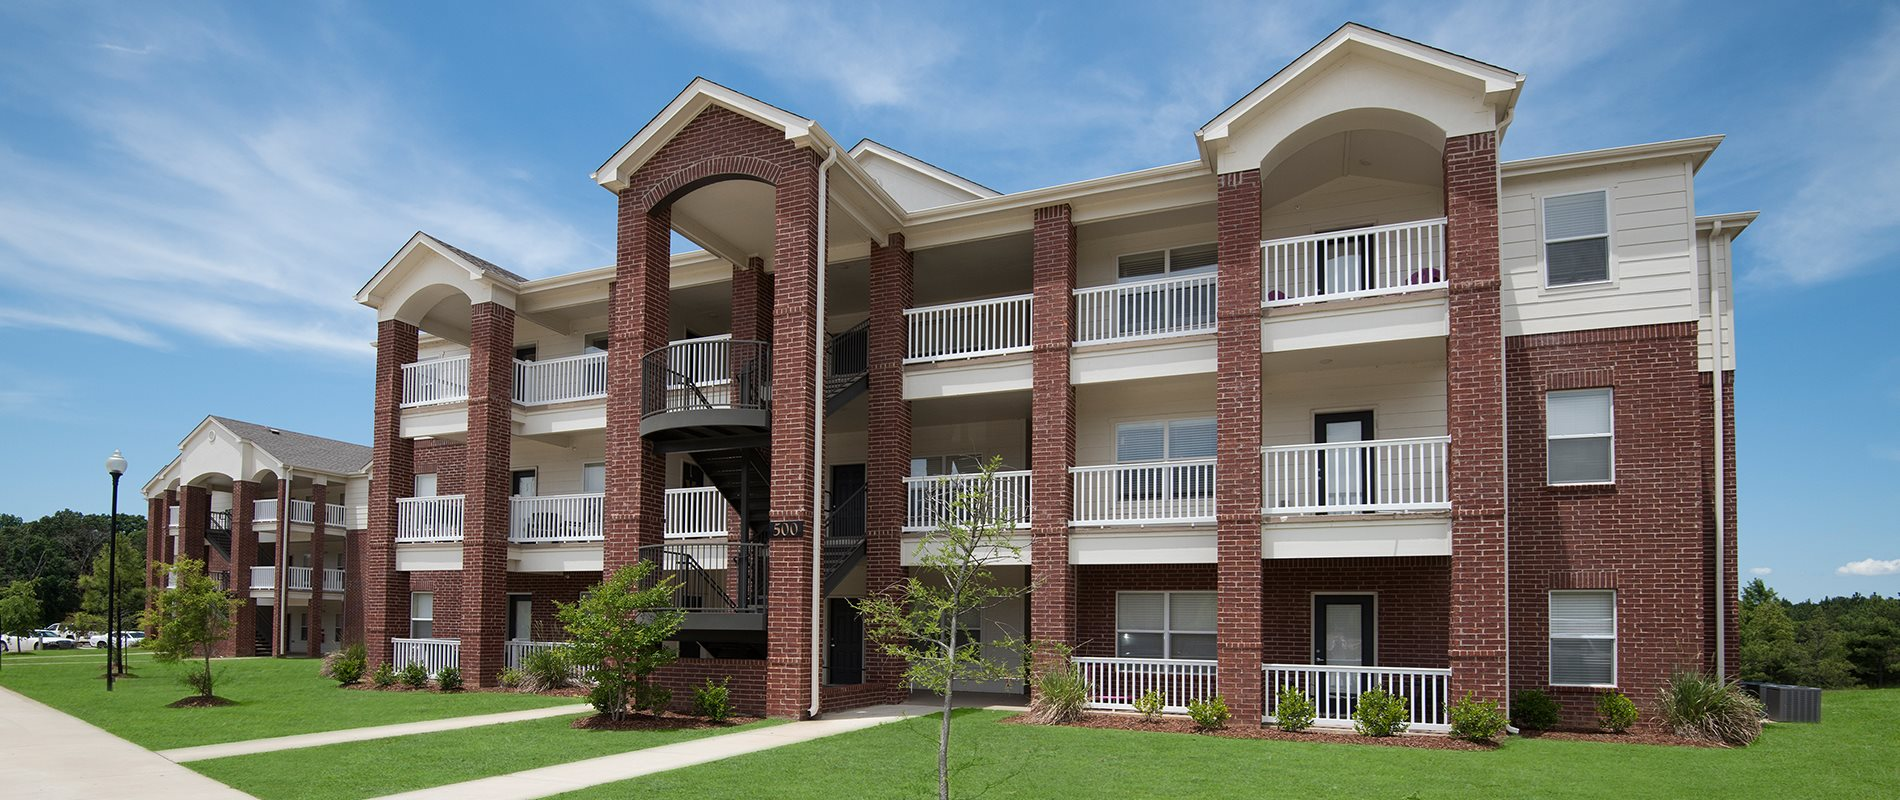 The greens at oxford apartments in oxford ms - 3 bedroom apartments in oxford ms ...